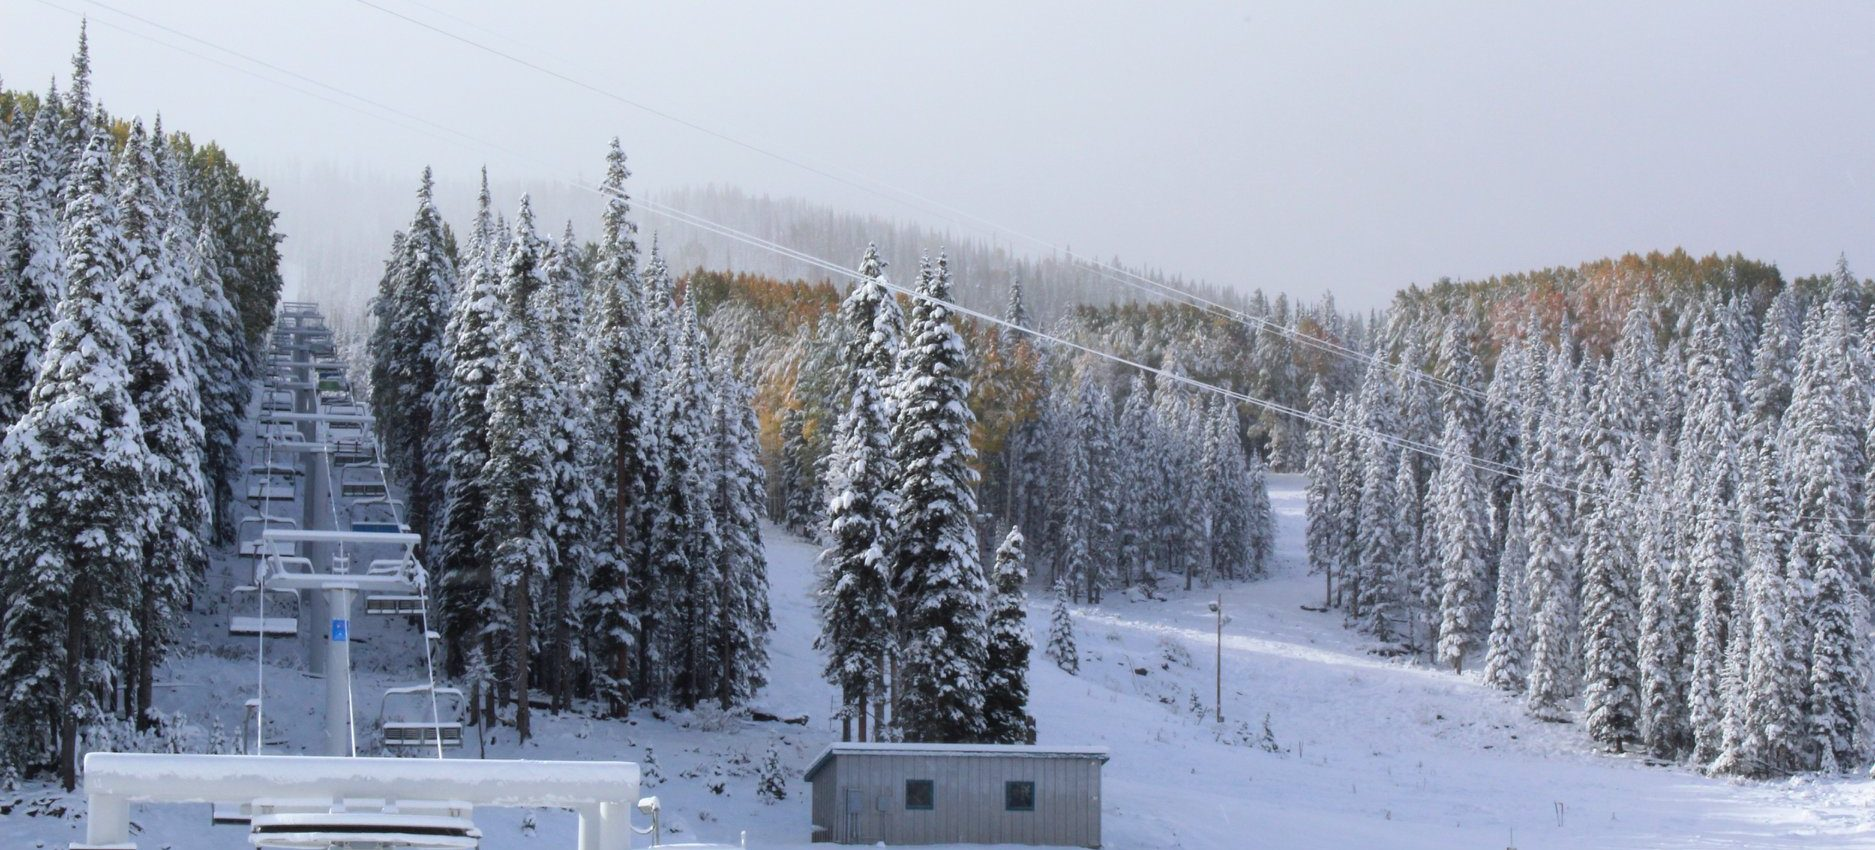 winter is coming! first snowfall in greer, az for the season